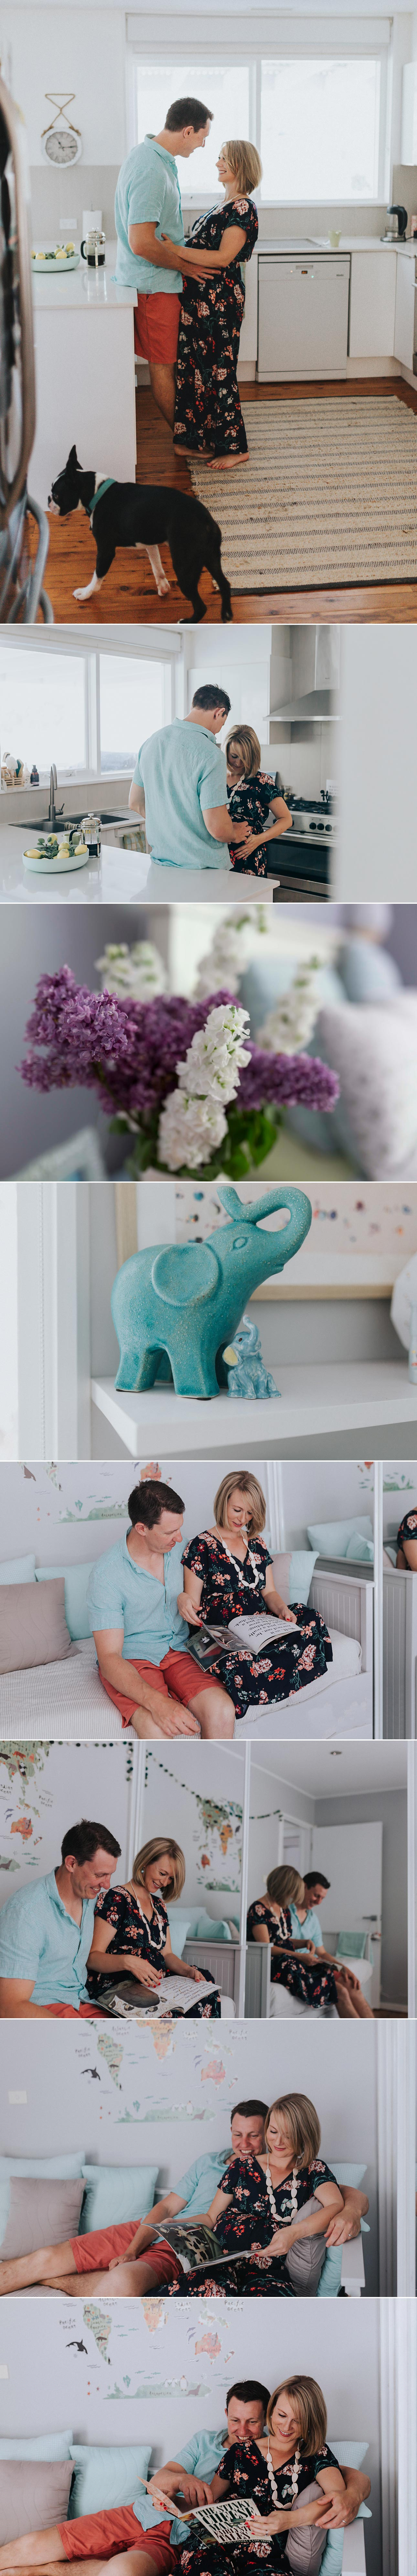 Intimate-in-home-maternity-session2